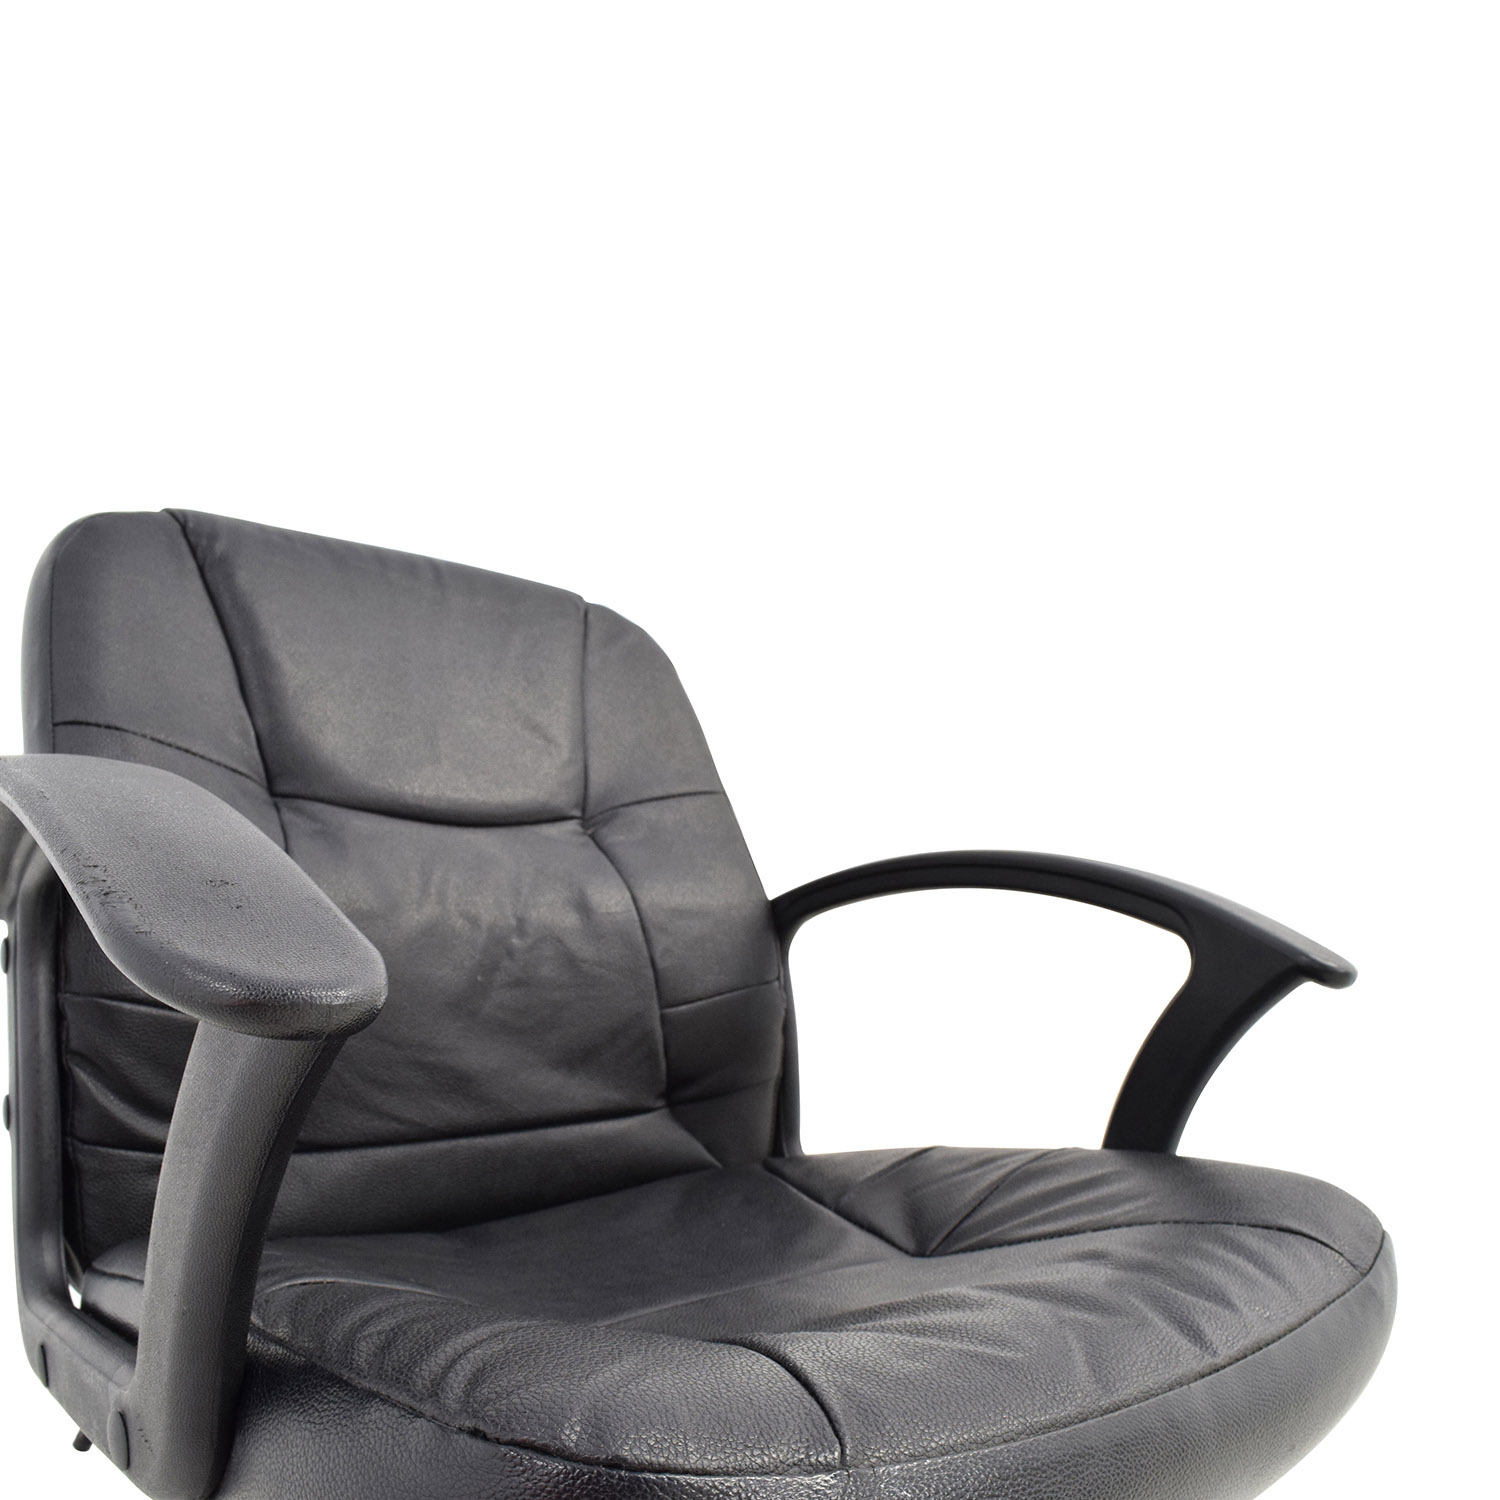 Black Leather Adjustable Desk Chair coupon